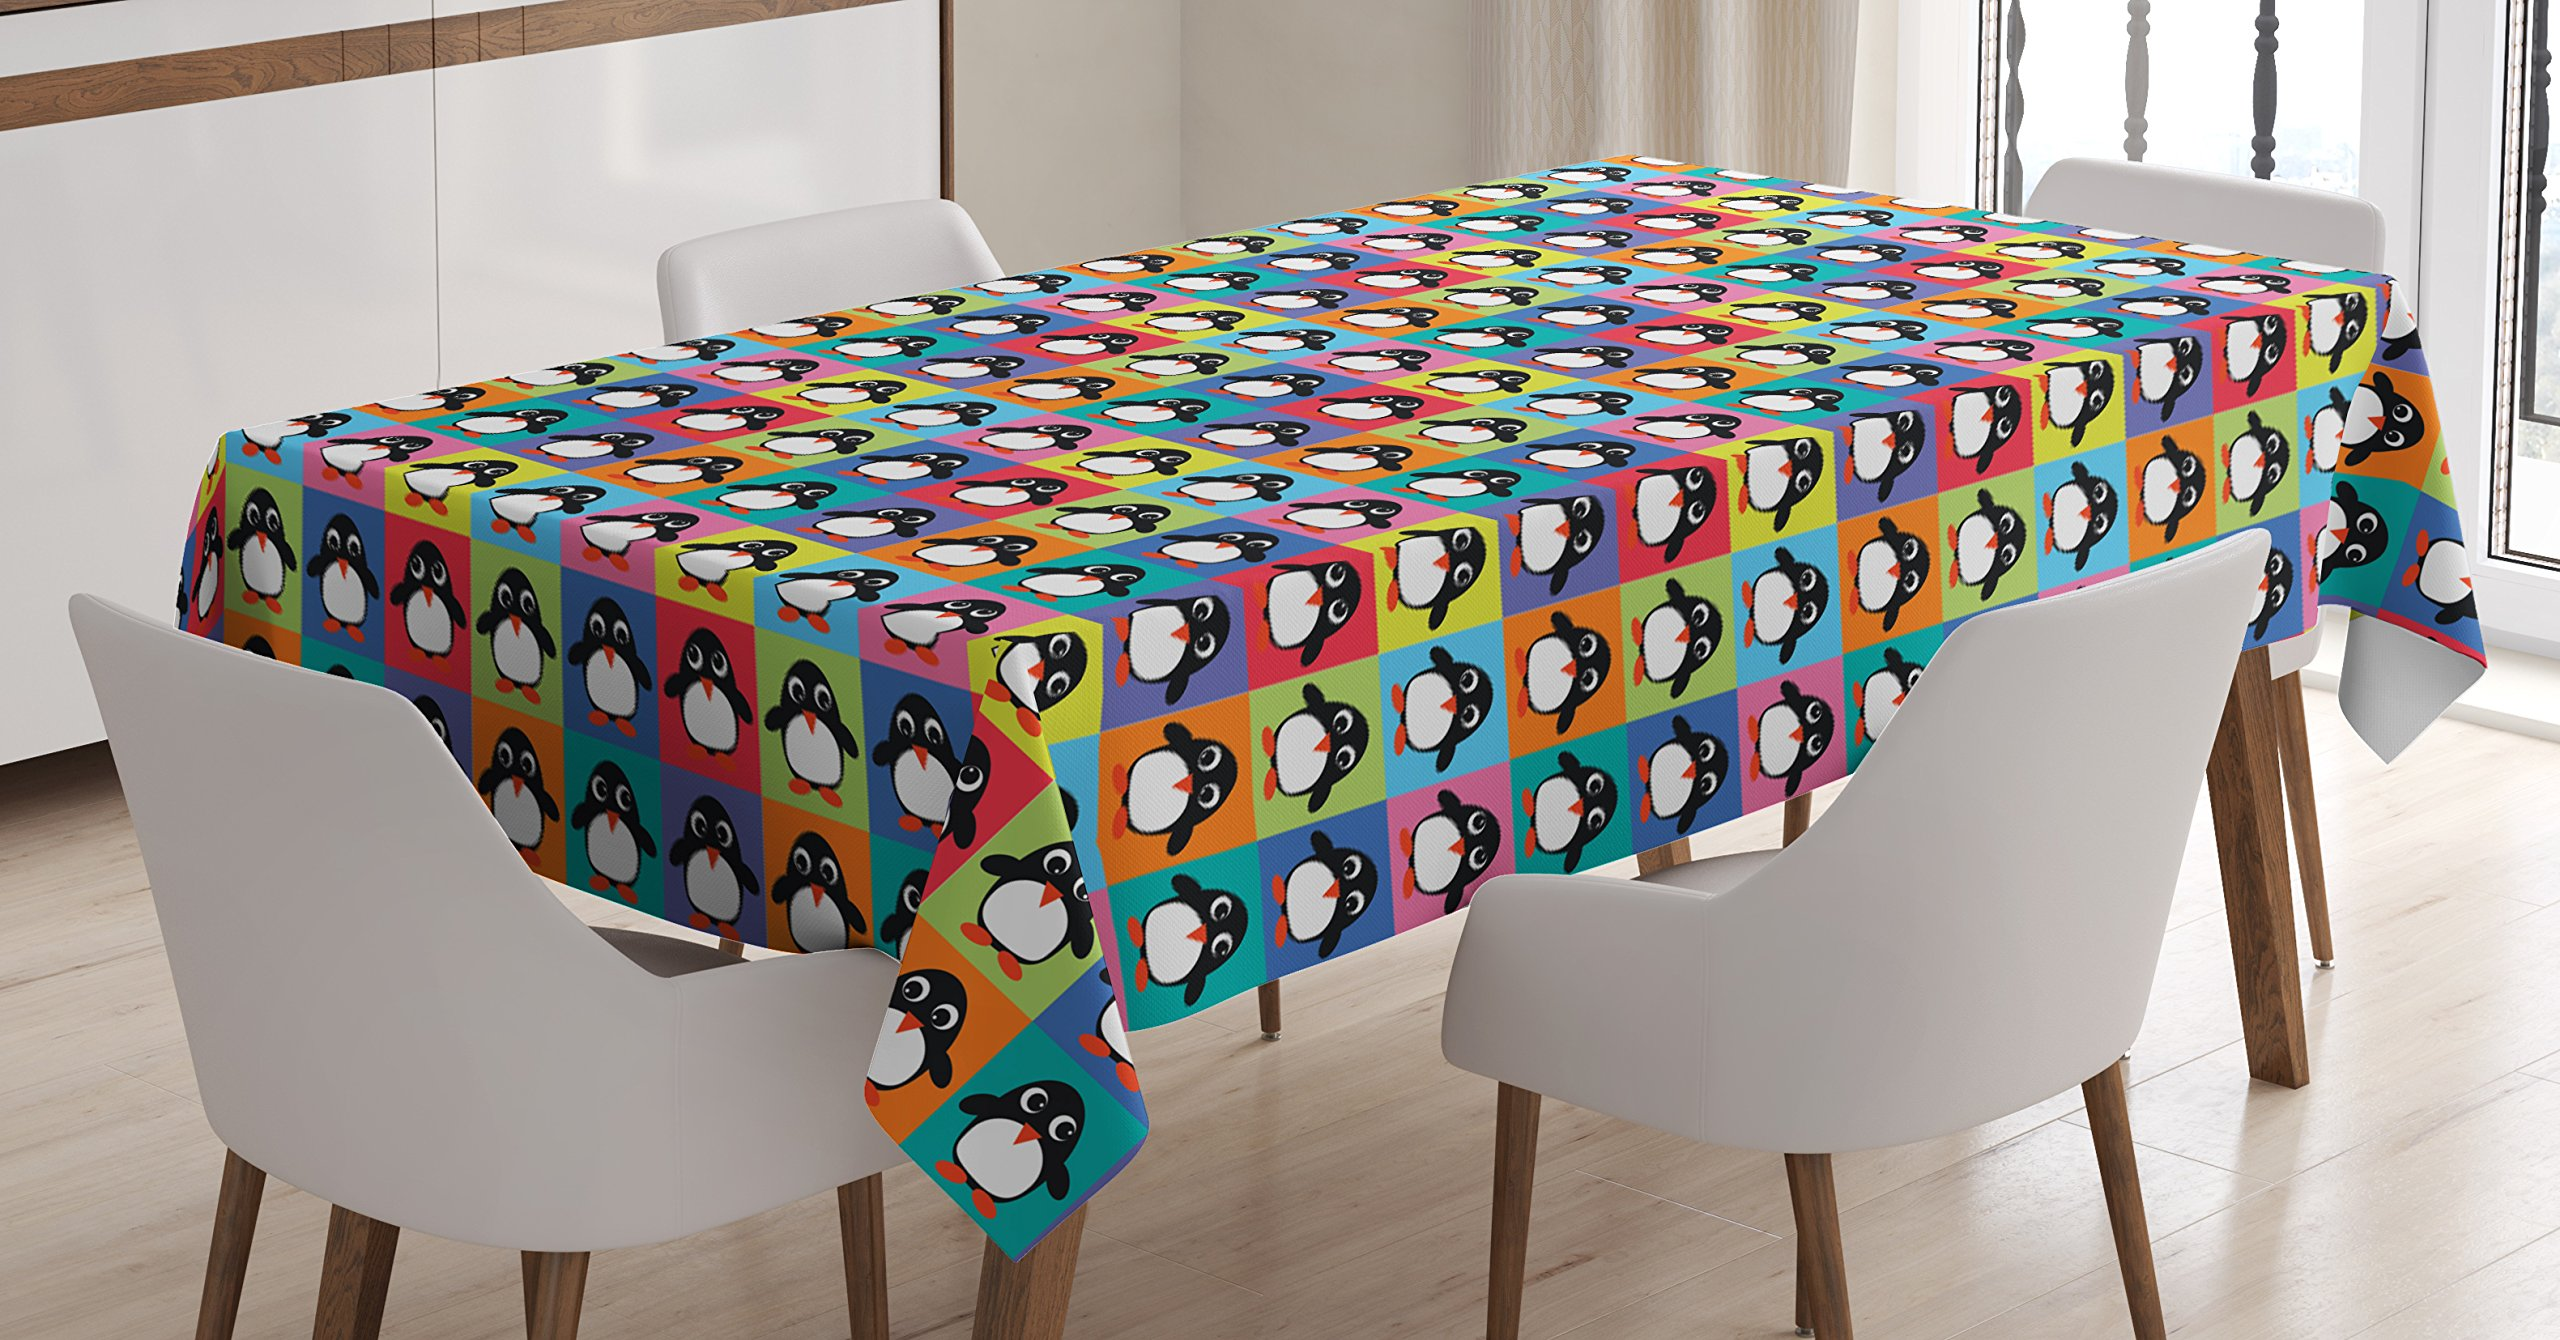 Ambesonne Penguin Tablecloth, Rainbow Colored Checkered Squares Pattern with Arctic Animal Cartoon Character, Dining Room Kitchen Rectangular Table Cover, 60 W X 90 L inches, Multicolor